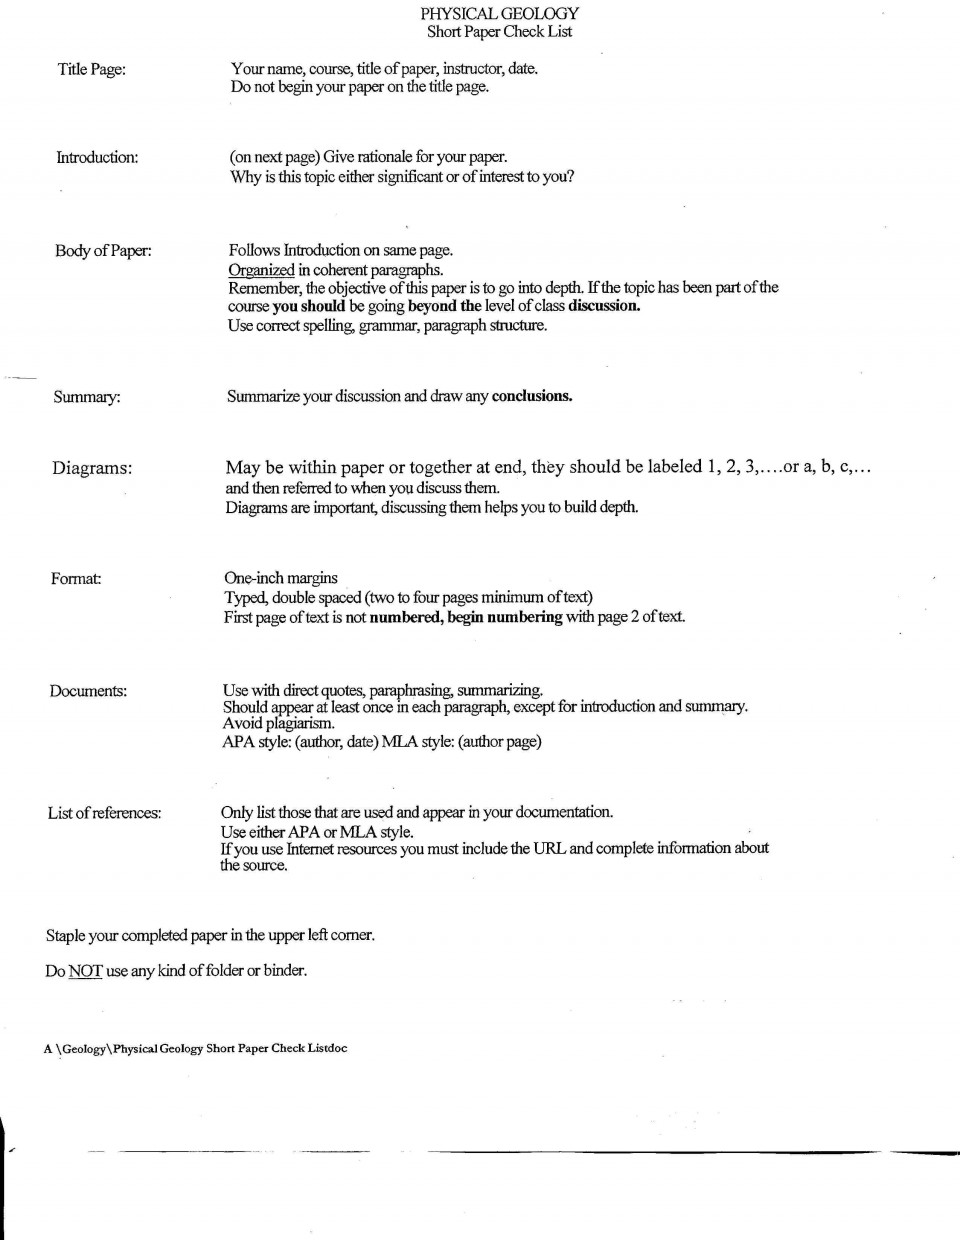 001 Short Paper Checklist Research Chemistry Formidable Topics Physical Ap 960